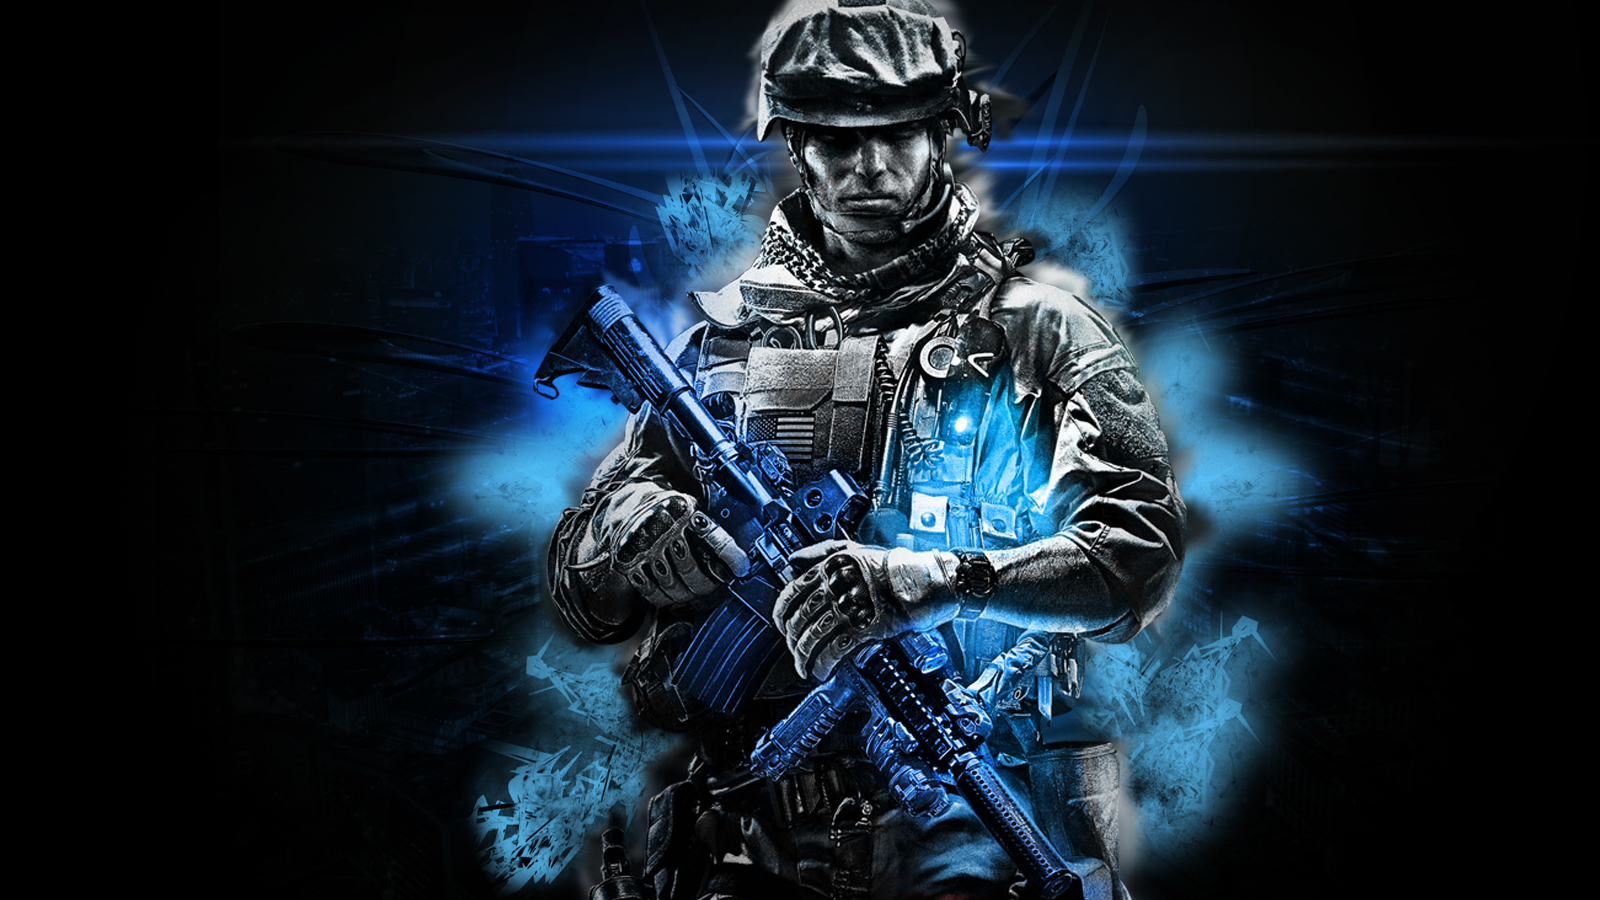 bf3 wallpaper - photo #33